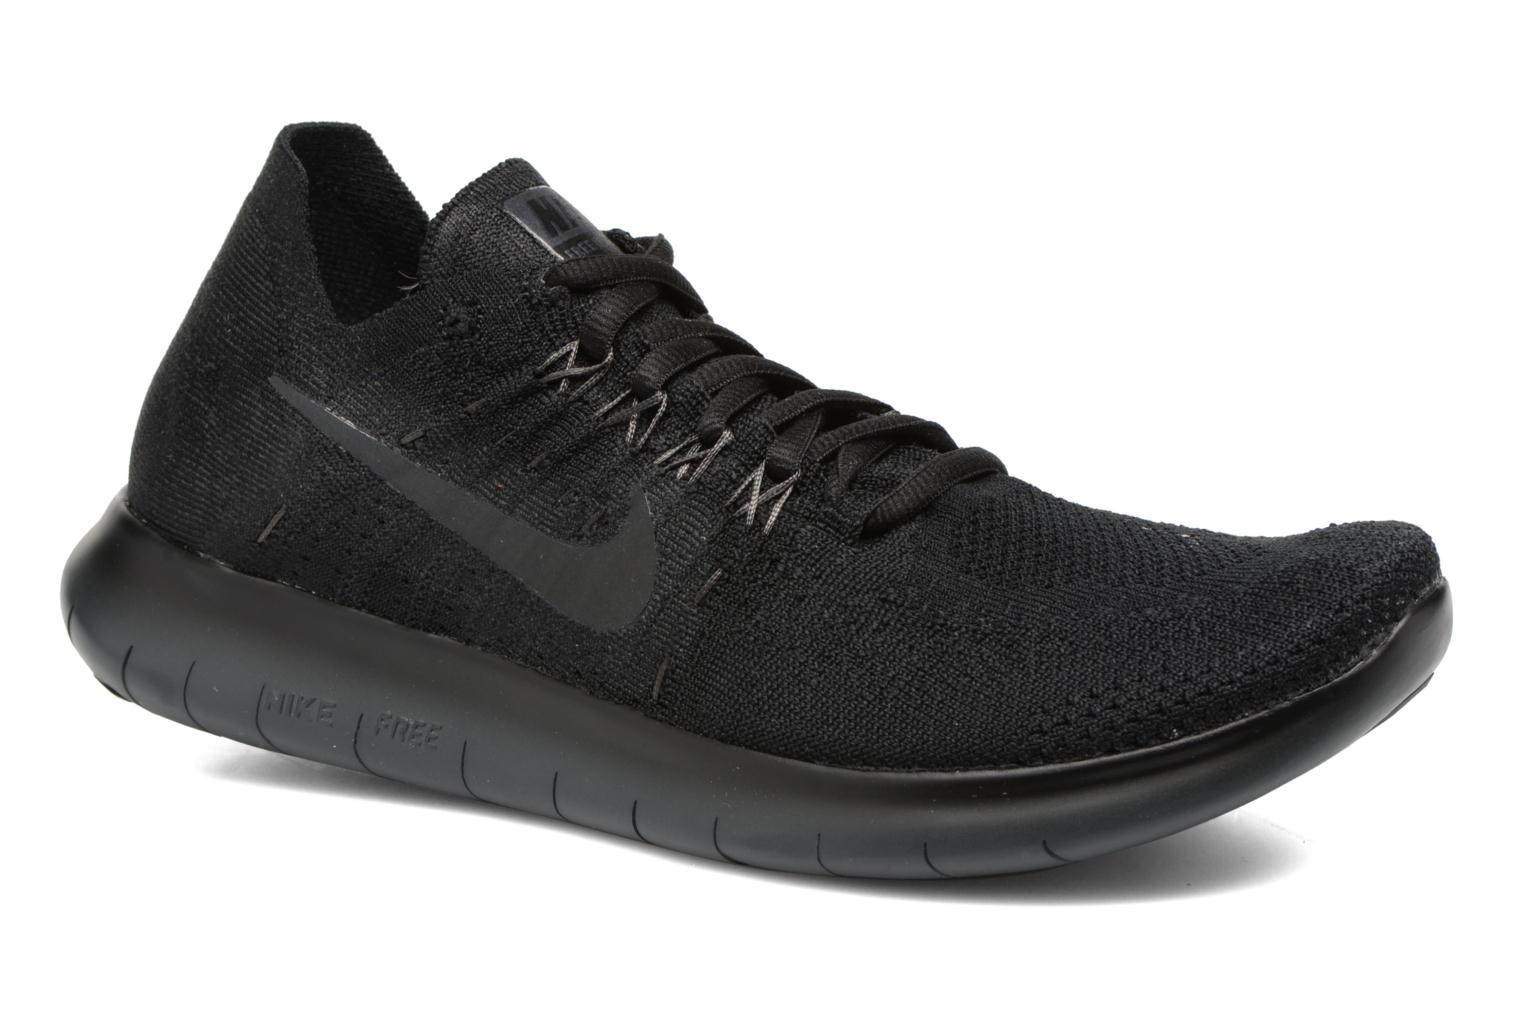 Wmns Nike free Rn Flyknit 2017 Black/anthracite